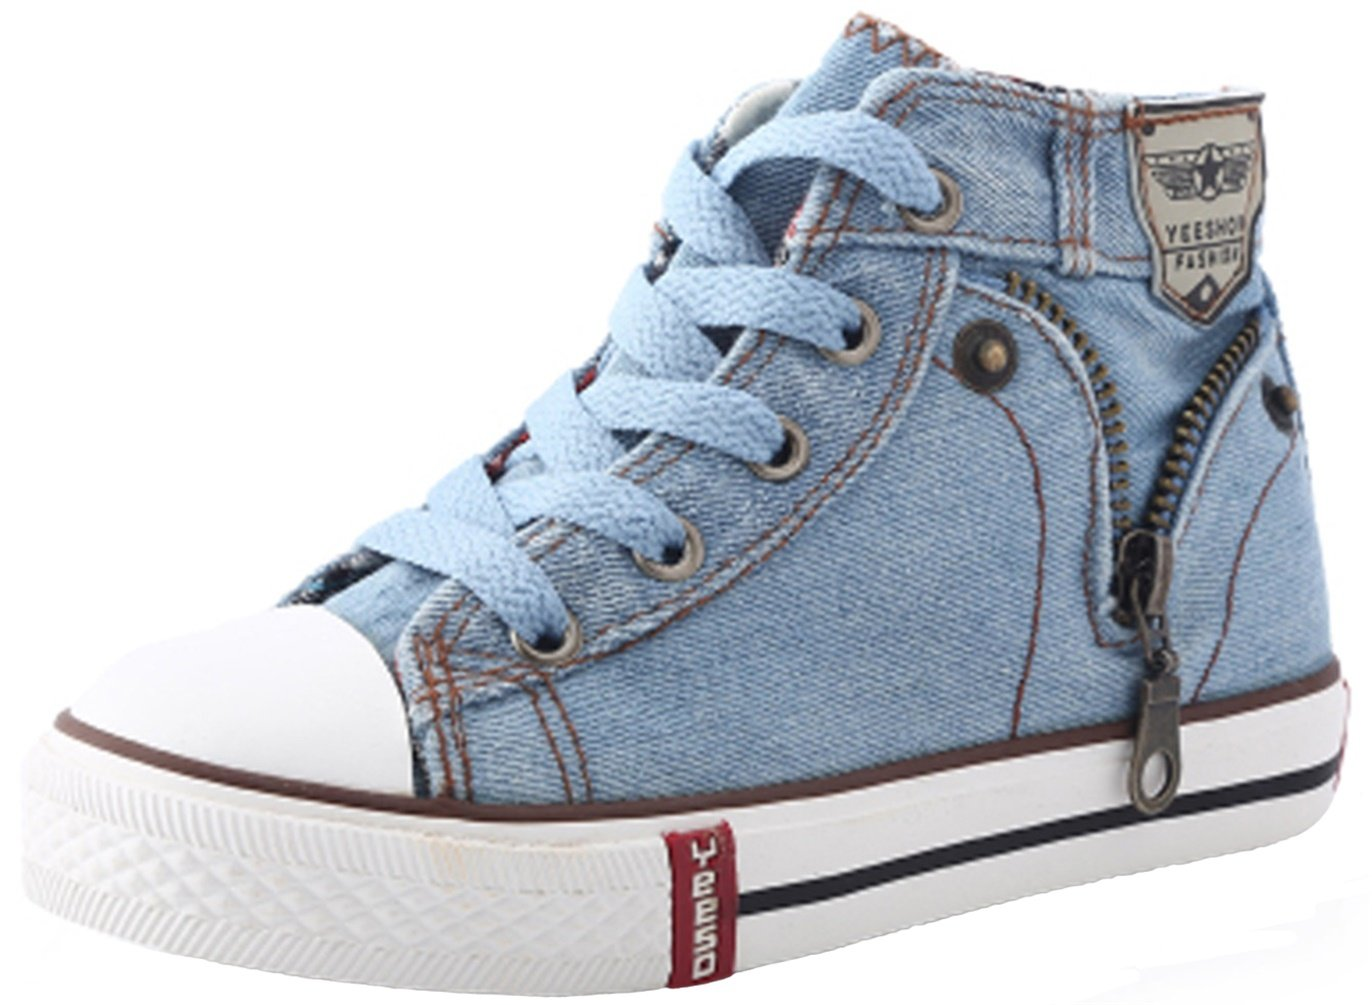 PPXID Boy's Girl's High Top Canvas Sneaker Lace up Casual Board Shoes Shoes-Light Blue 8.5 US Size